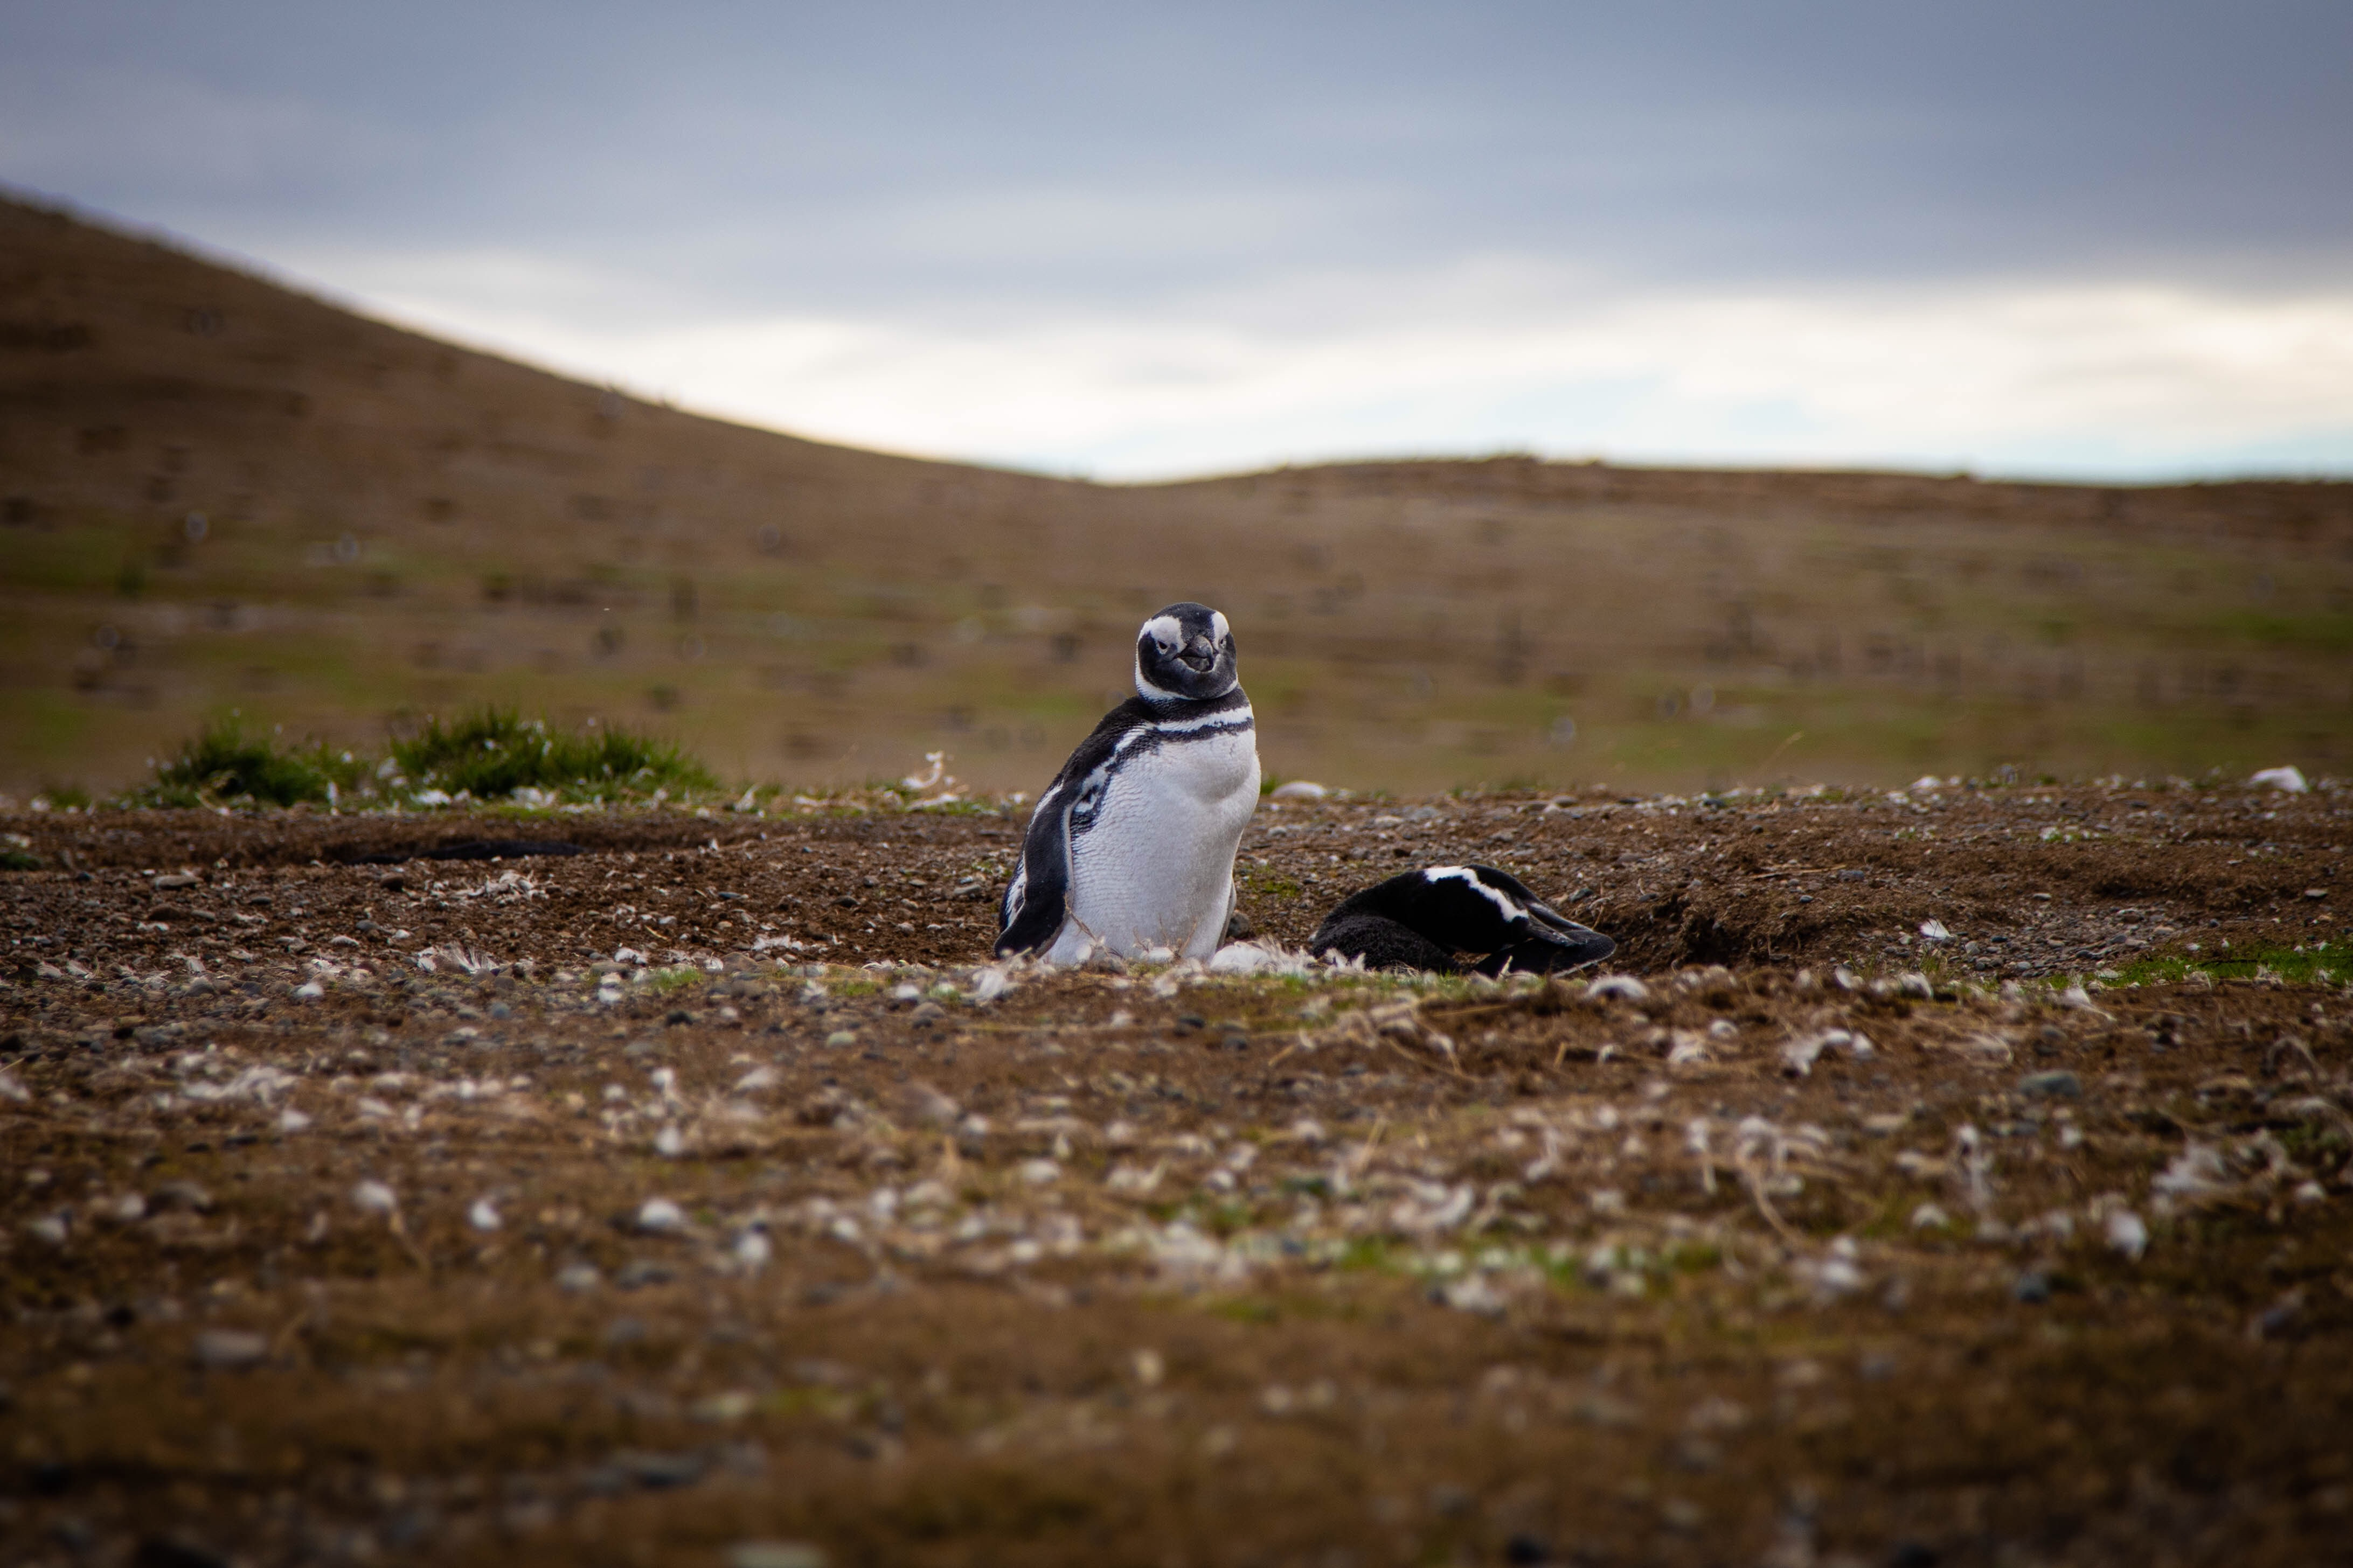 A penguin in its home near Punta Arenas